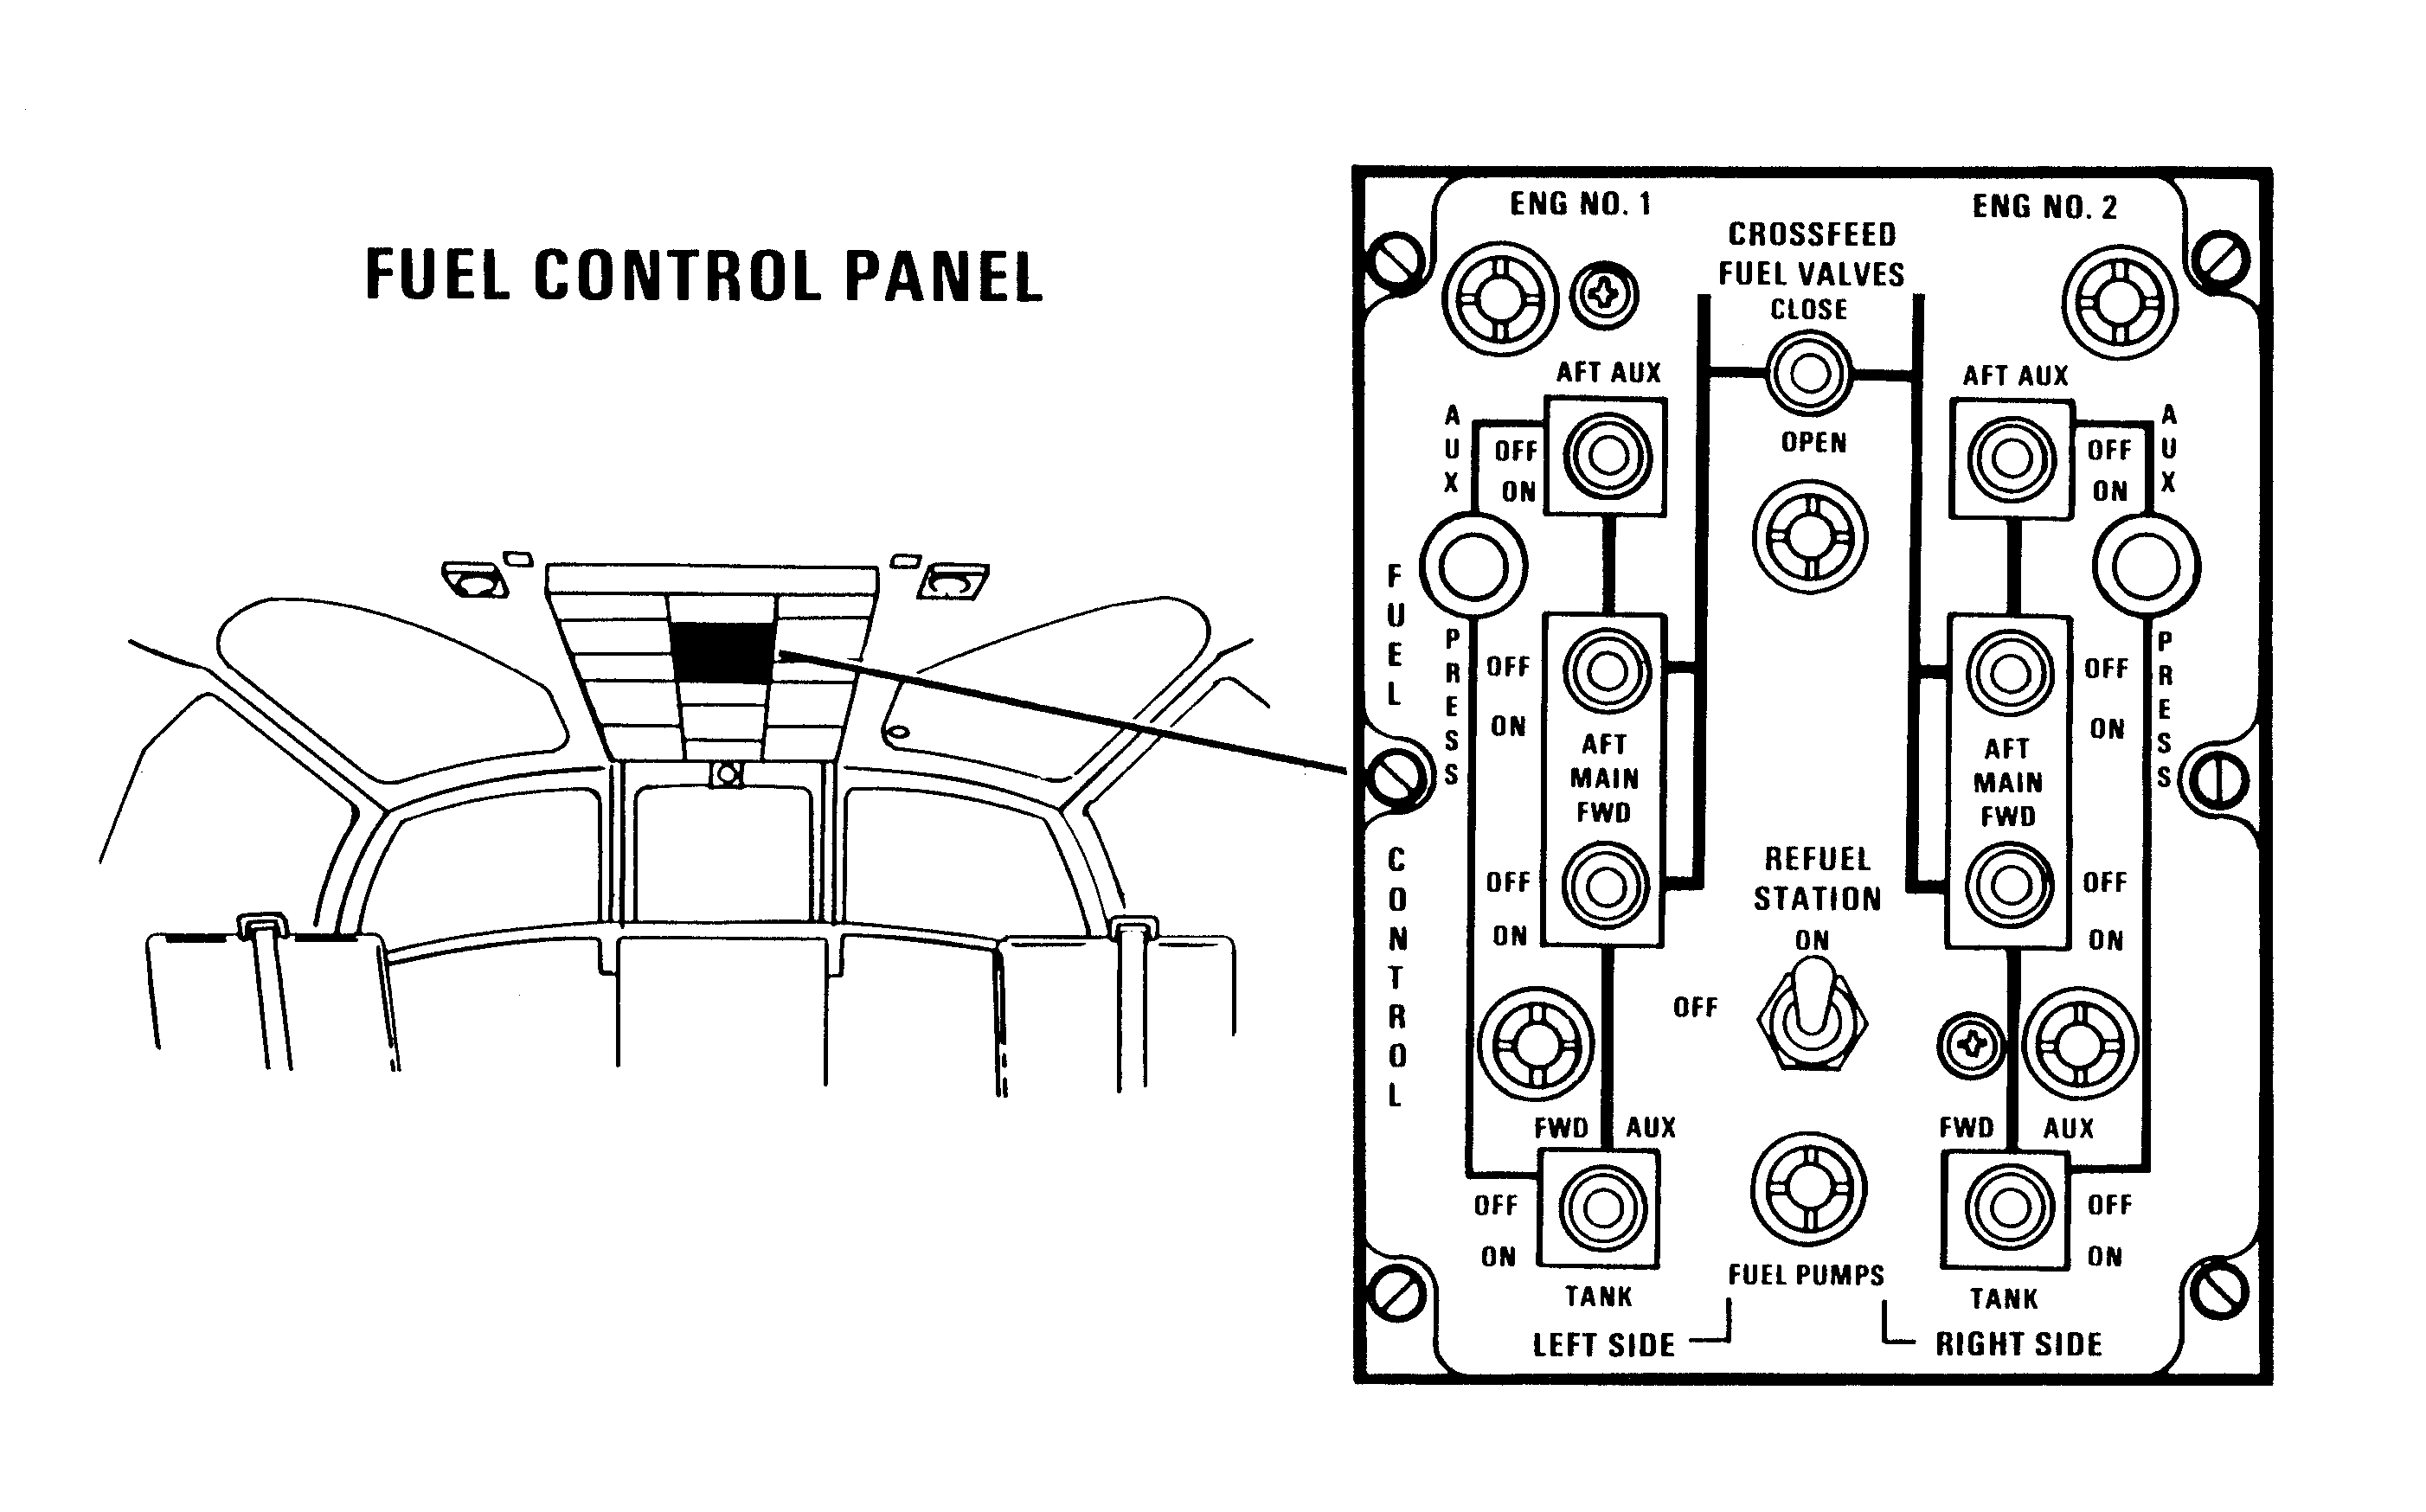 Security System Panel Wiring